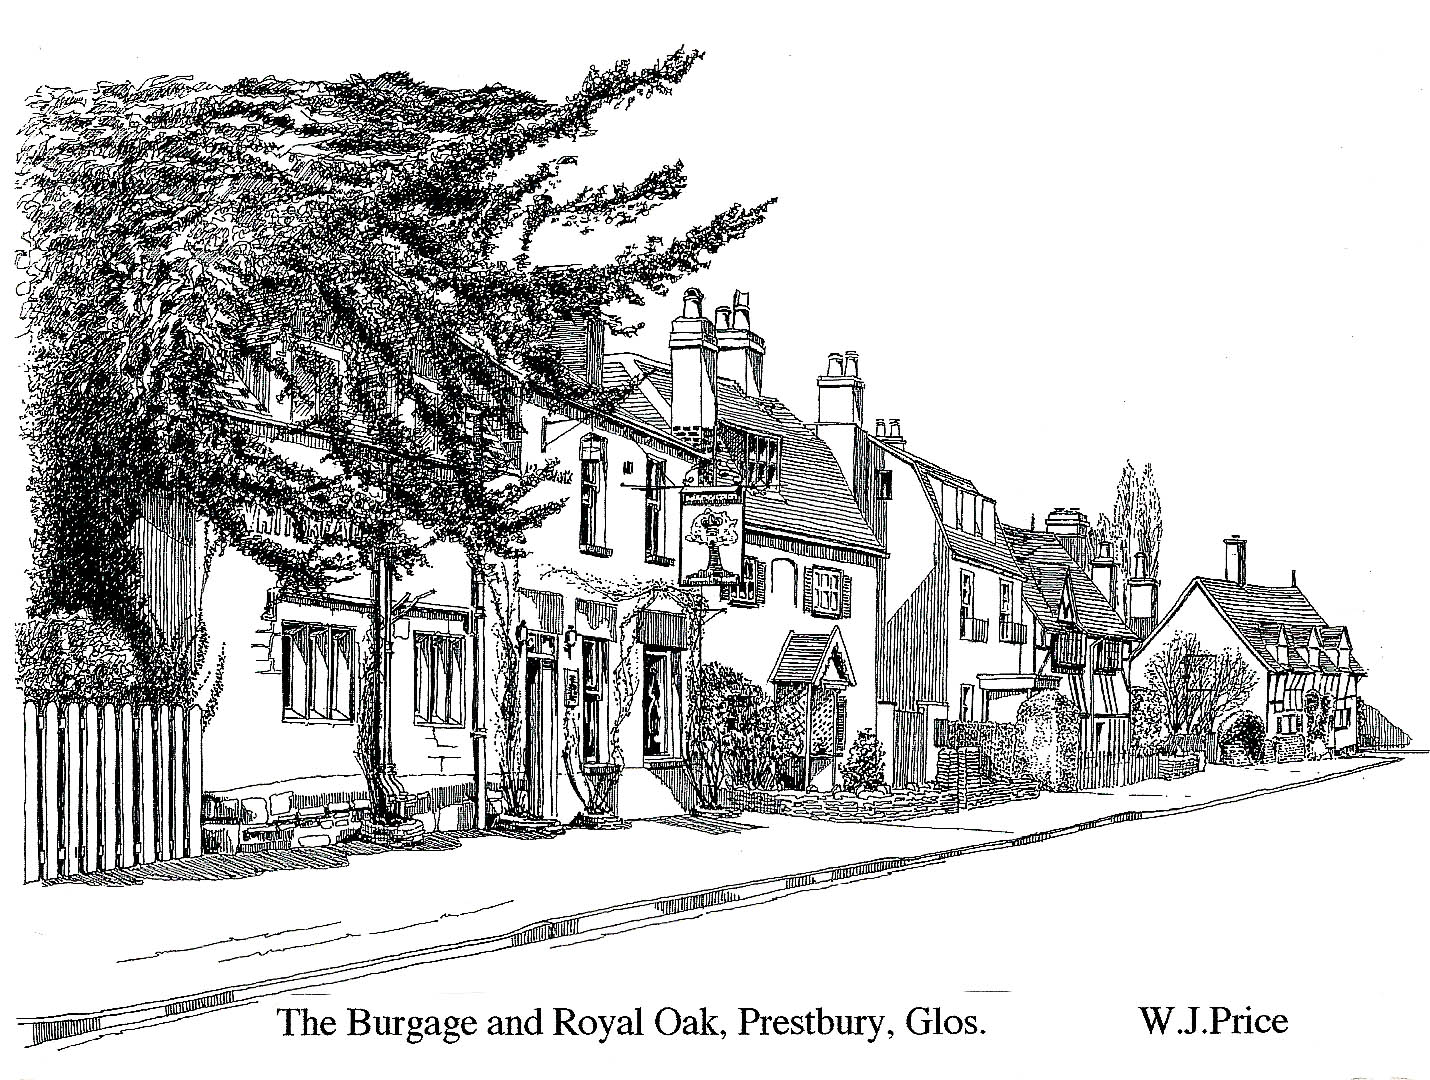 royal oak prestbury